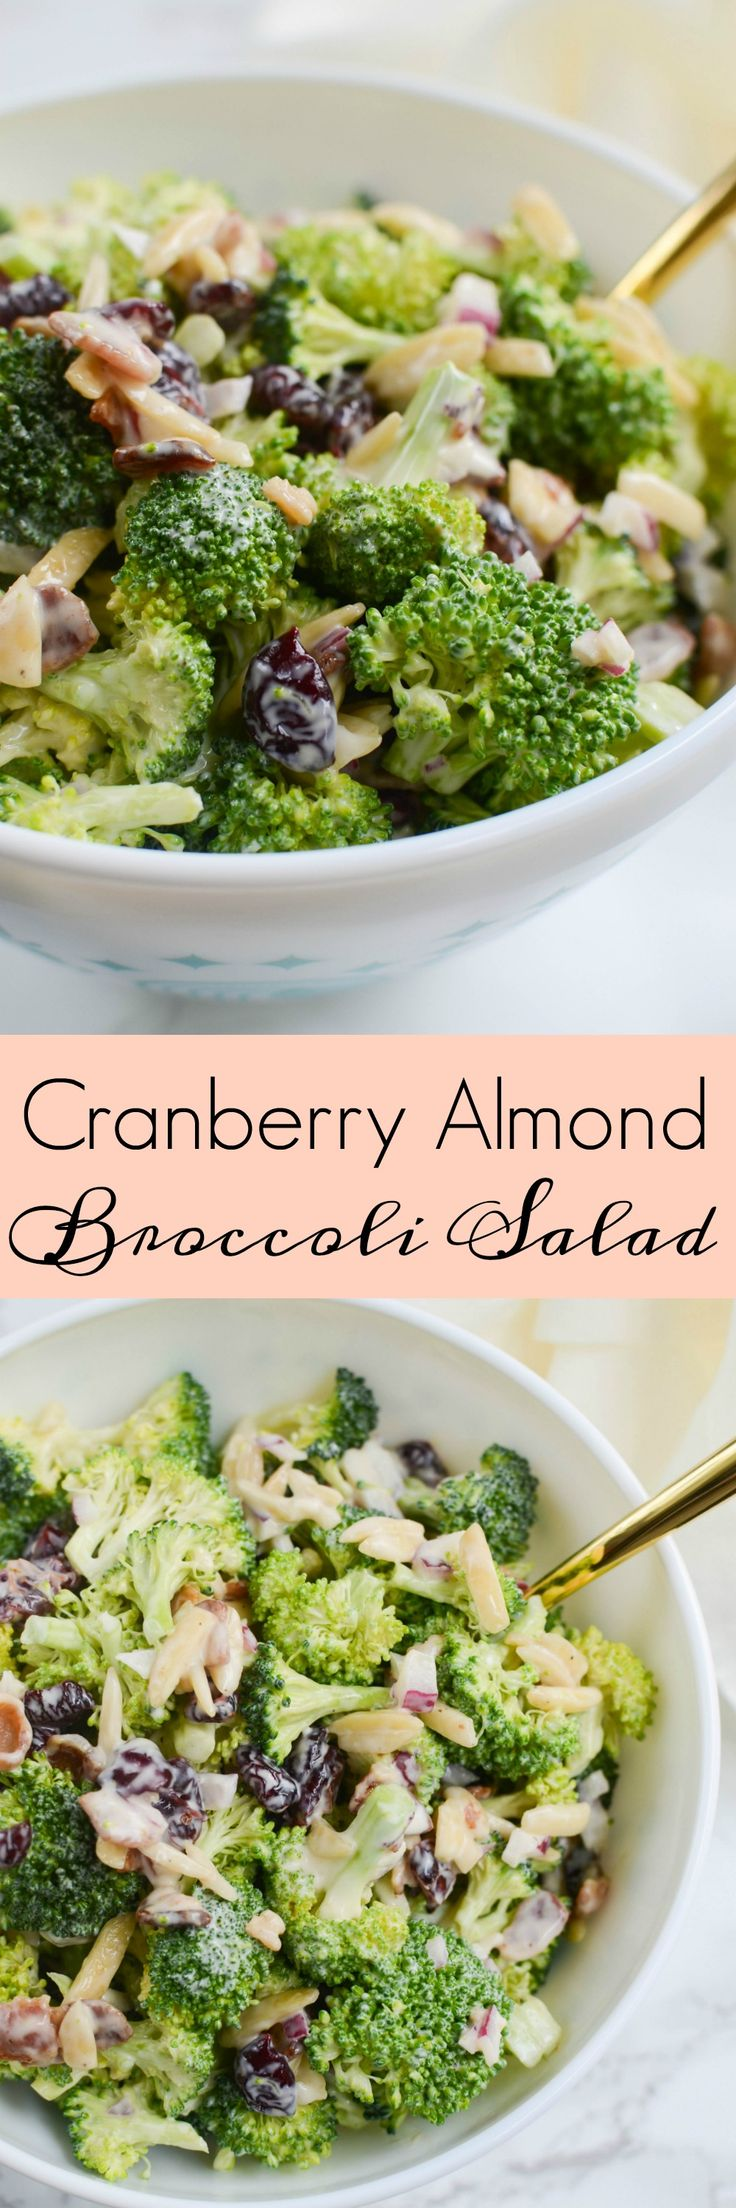 Cranberry Almond Broccoli Salad - a lightened up version of the classic!